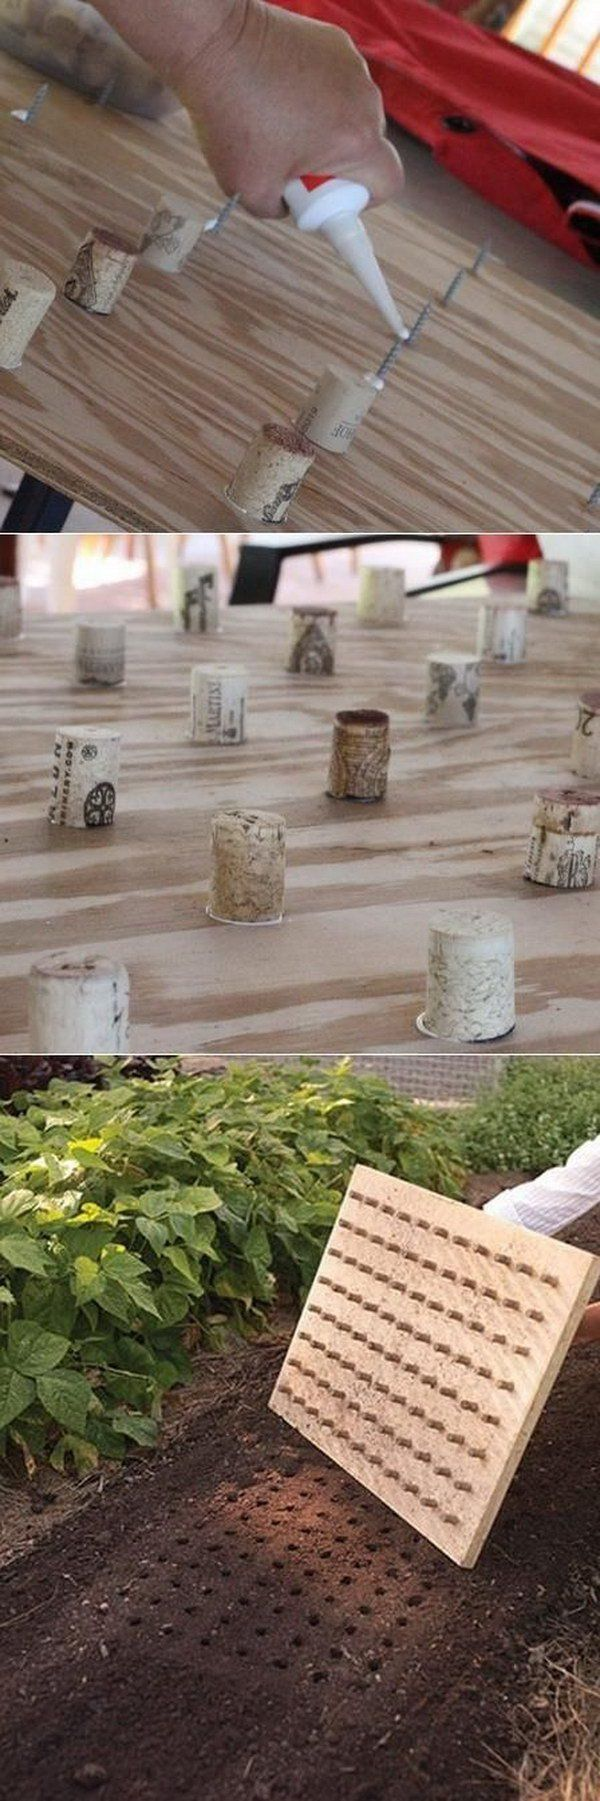 Make an Easy Seed Hole Maker out of Wine Corks and a Piece of Wood